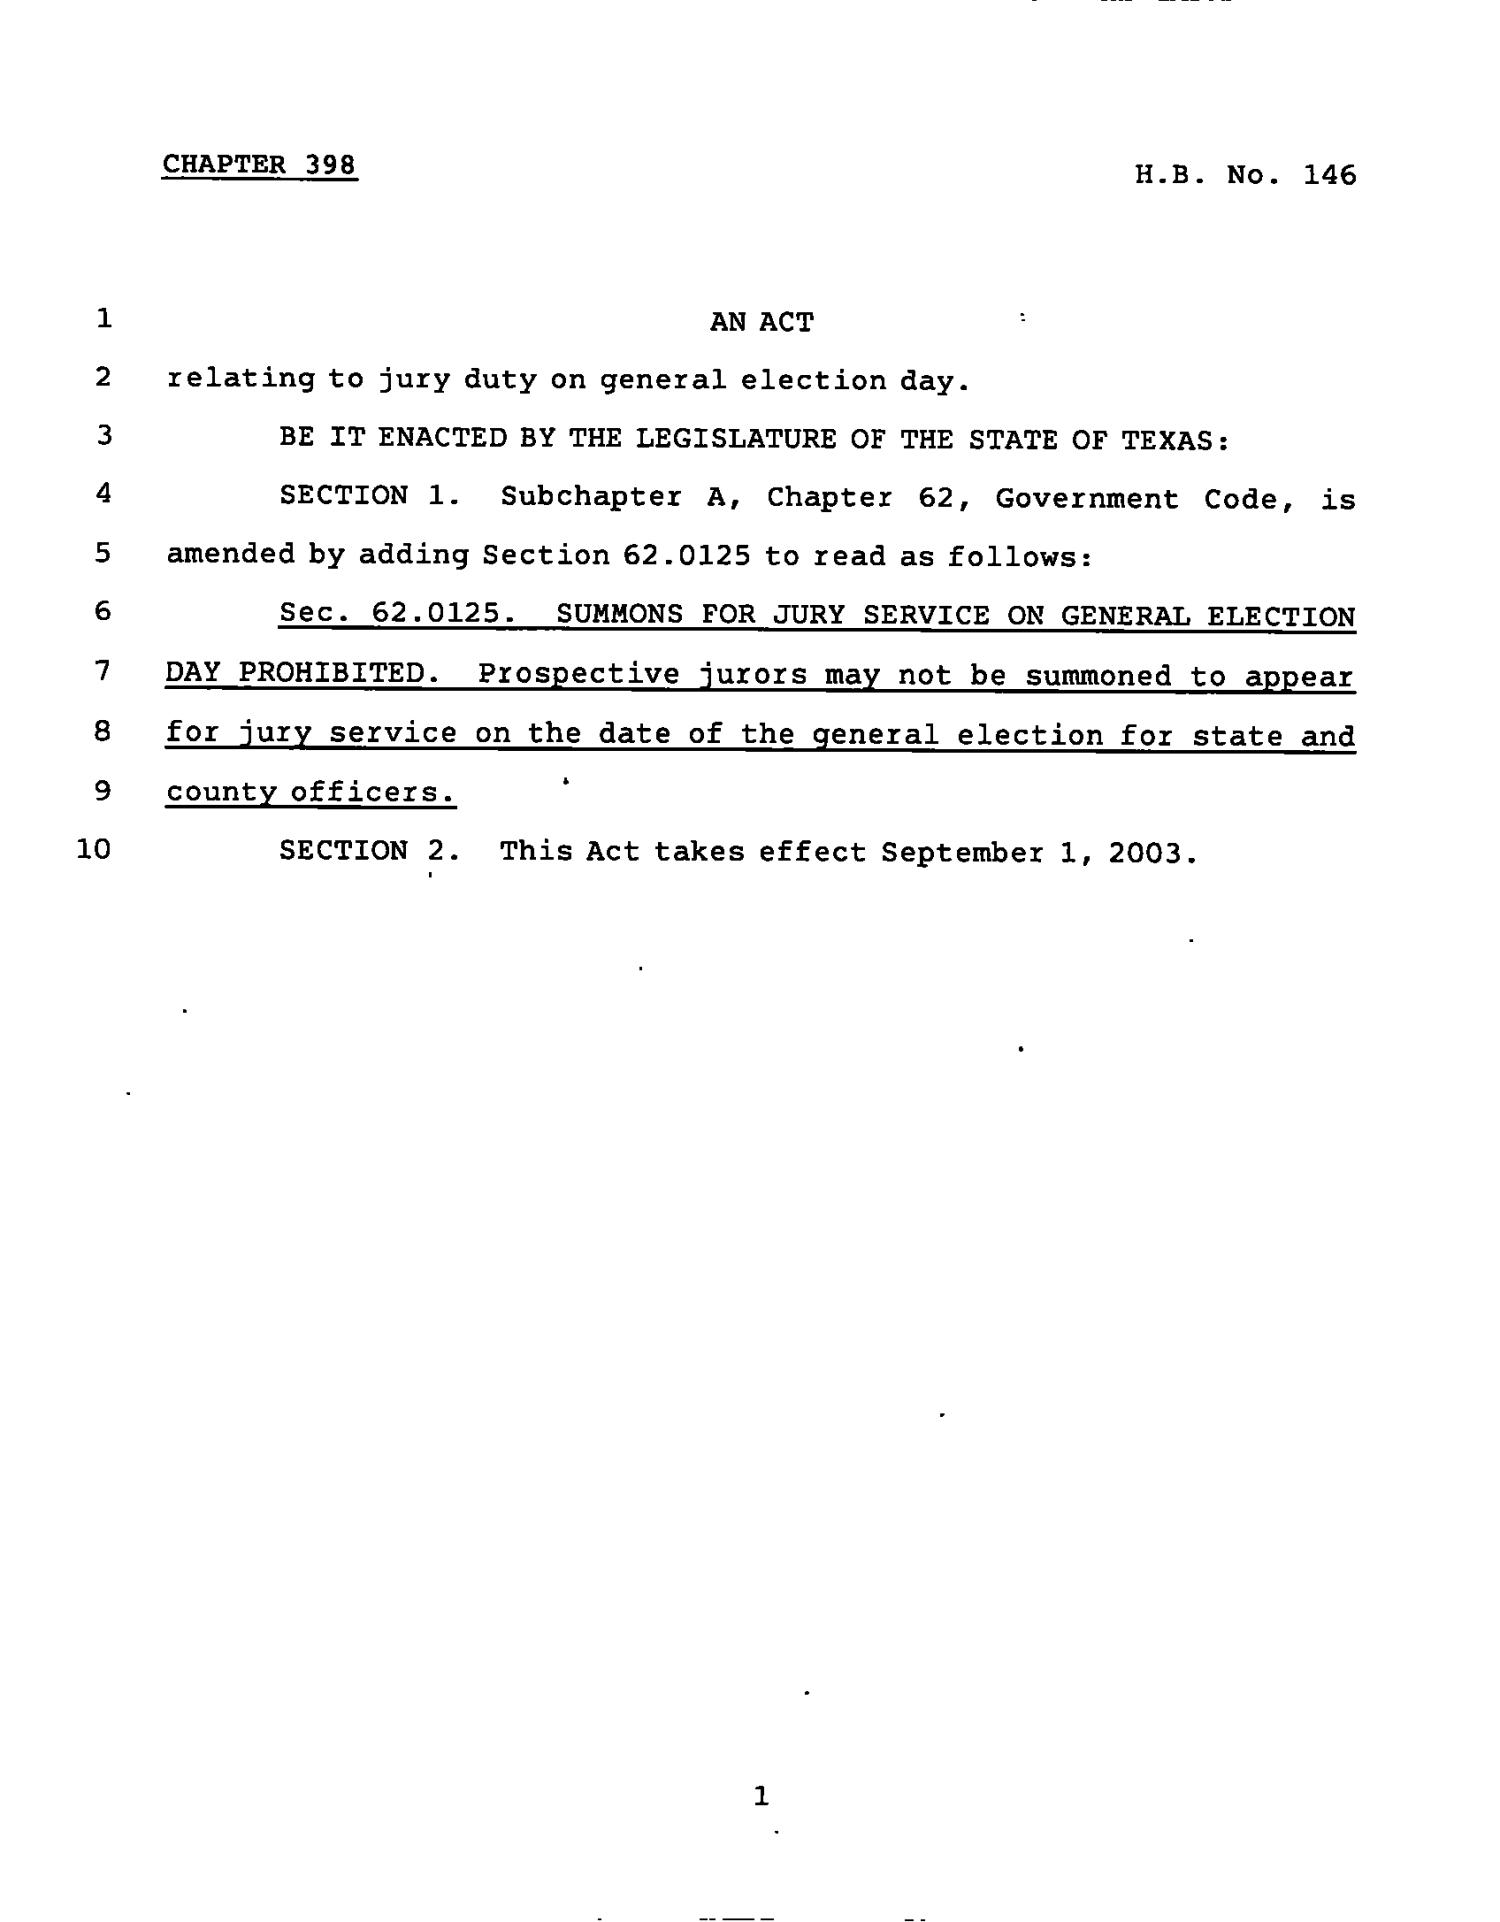 78th Texas Legislature, Regular Session, House Bill 146, Chapter 398                                                                                                      [Sequence #]: 1 of 2